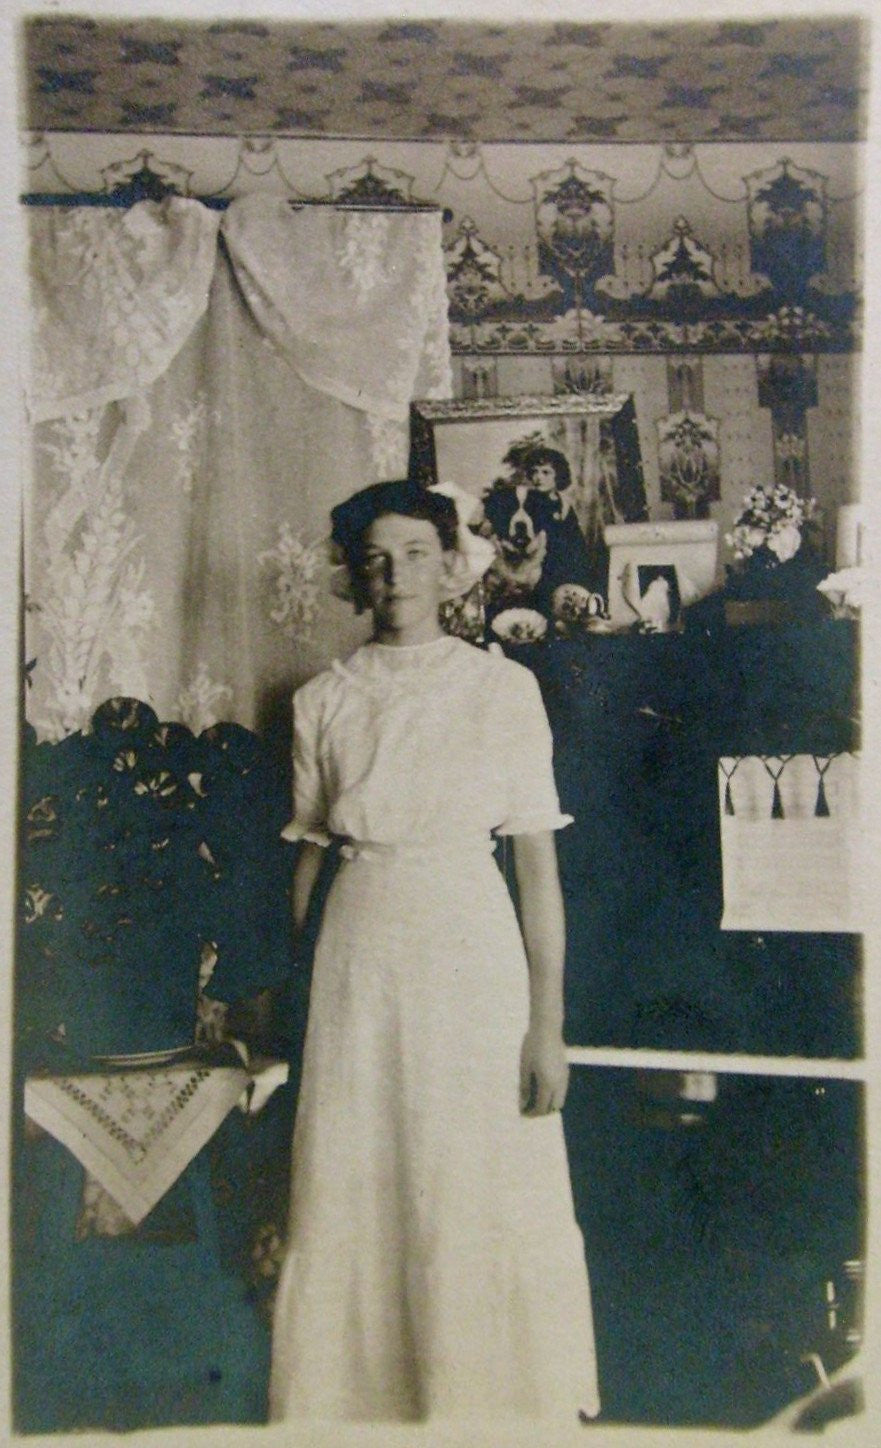 Woman in Front of Piano with Wallpaper